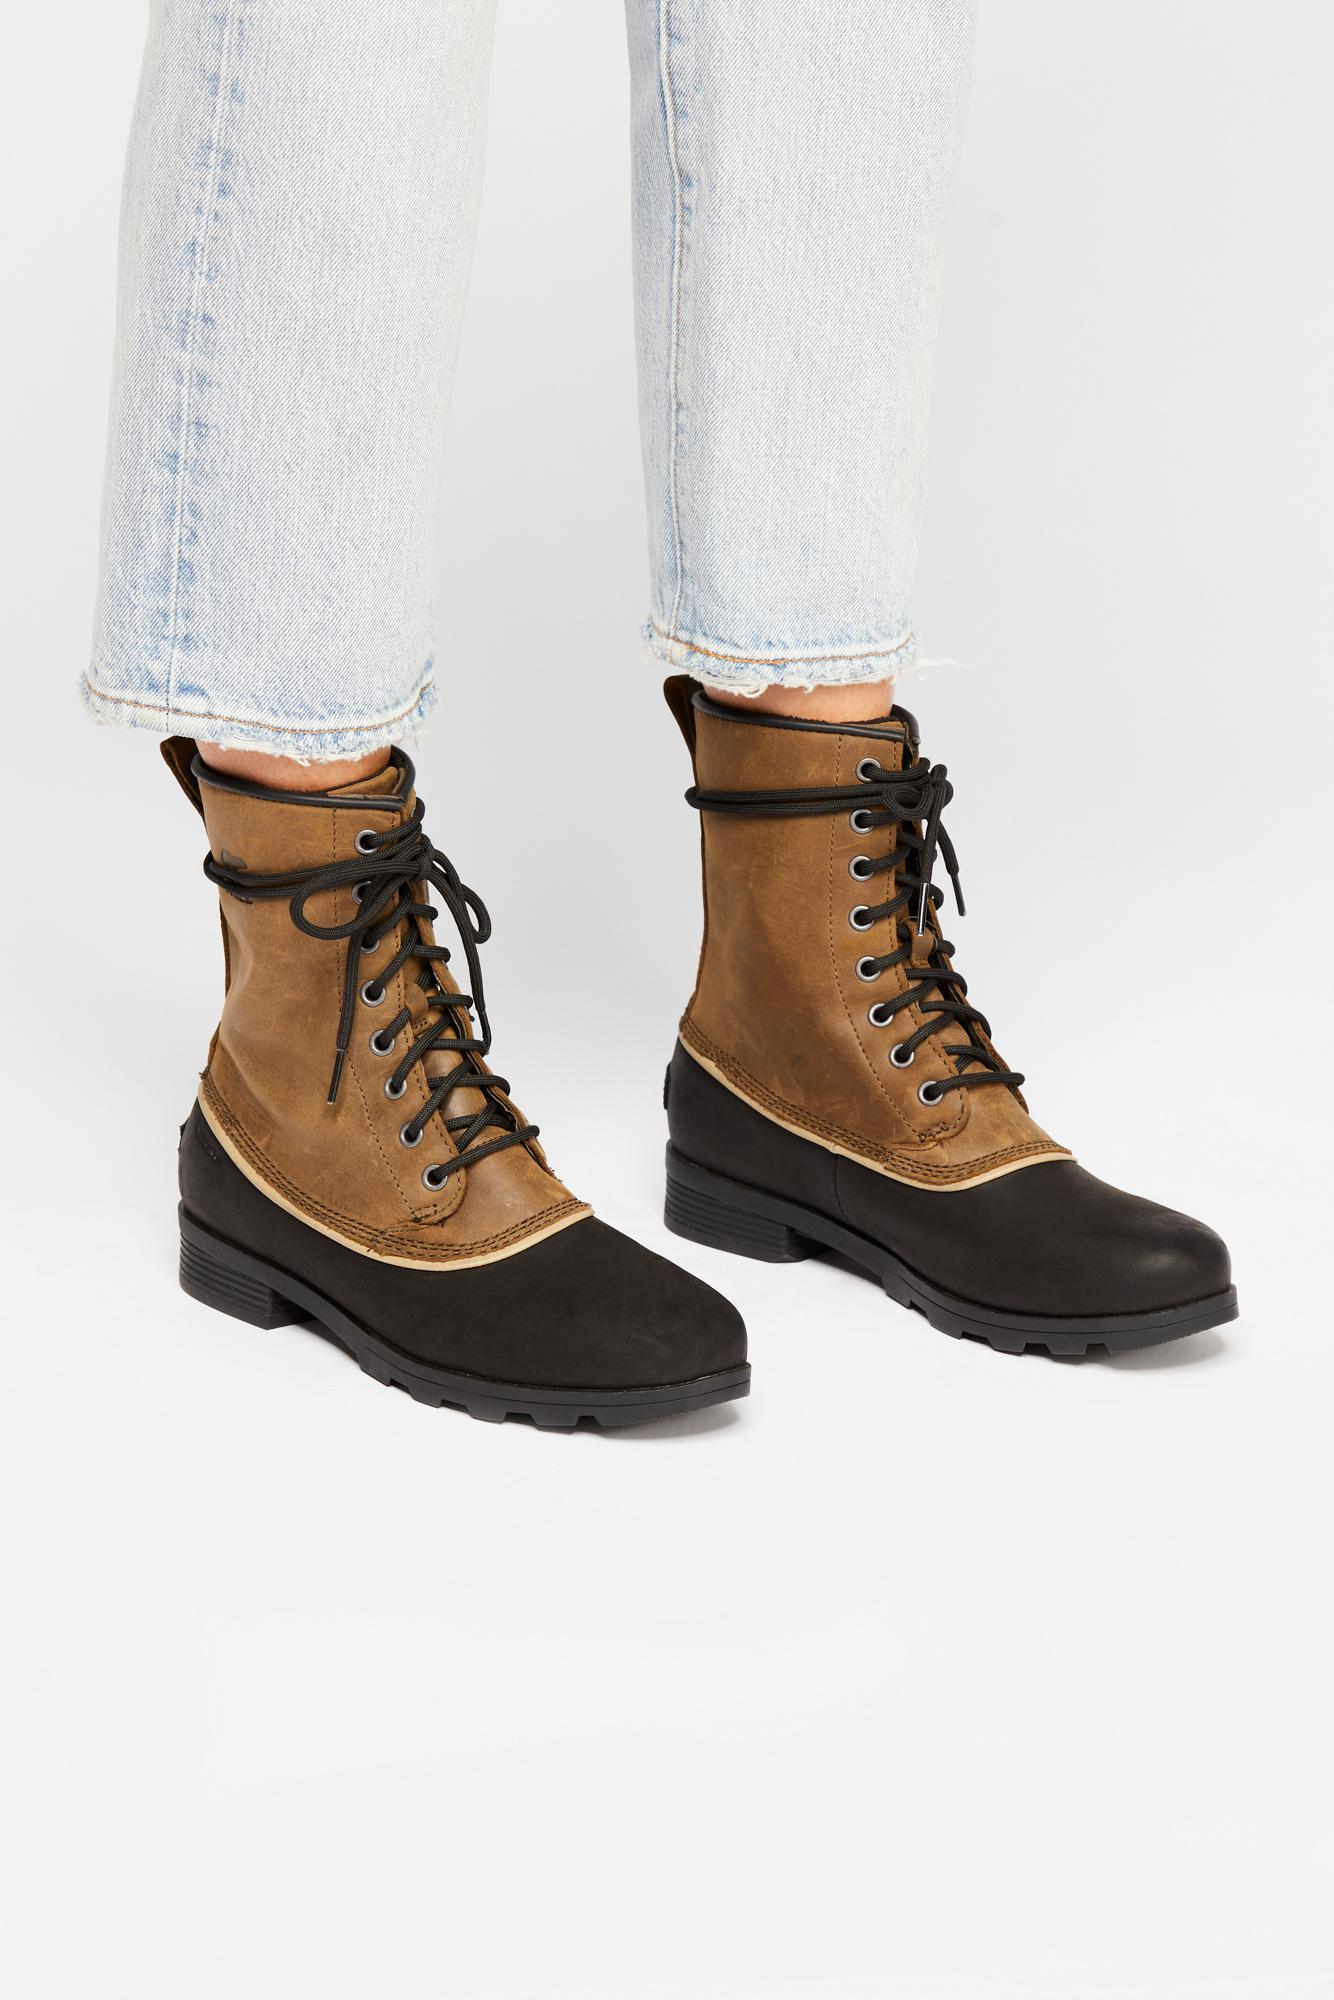 91b79fda0 Free People Emelie 1964 Weather Boot By Sorel in Gray - Lyst